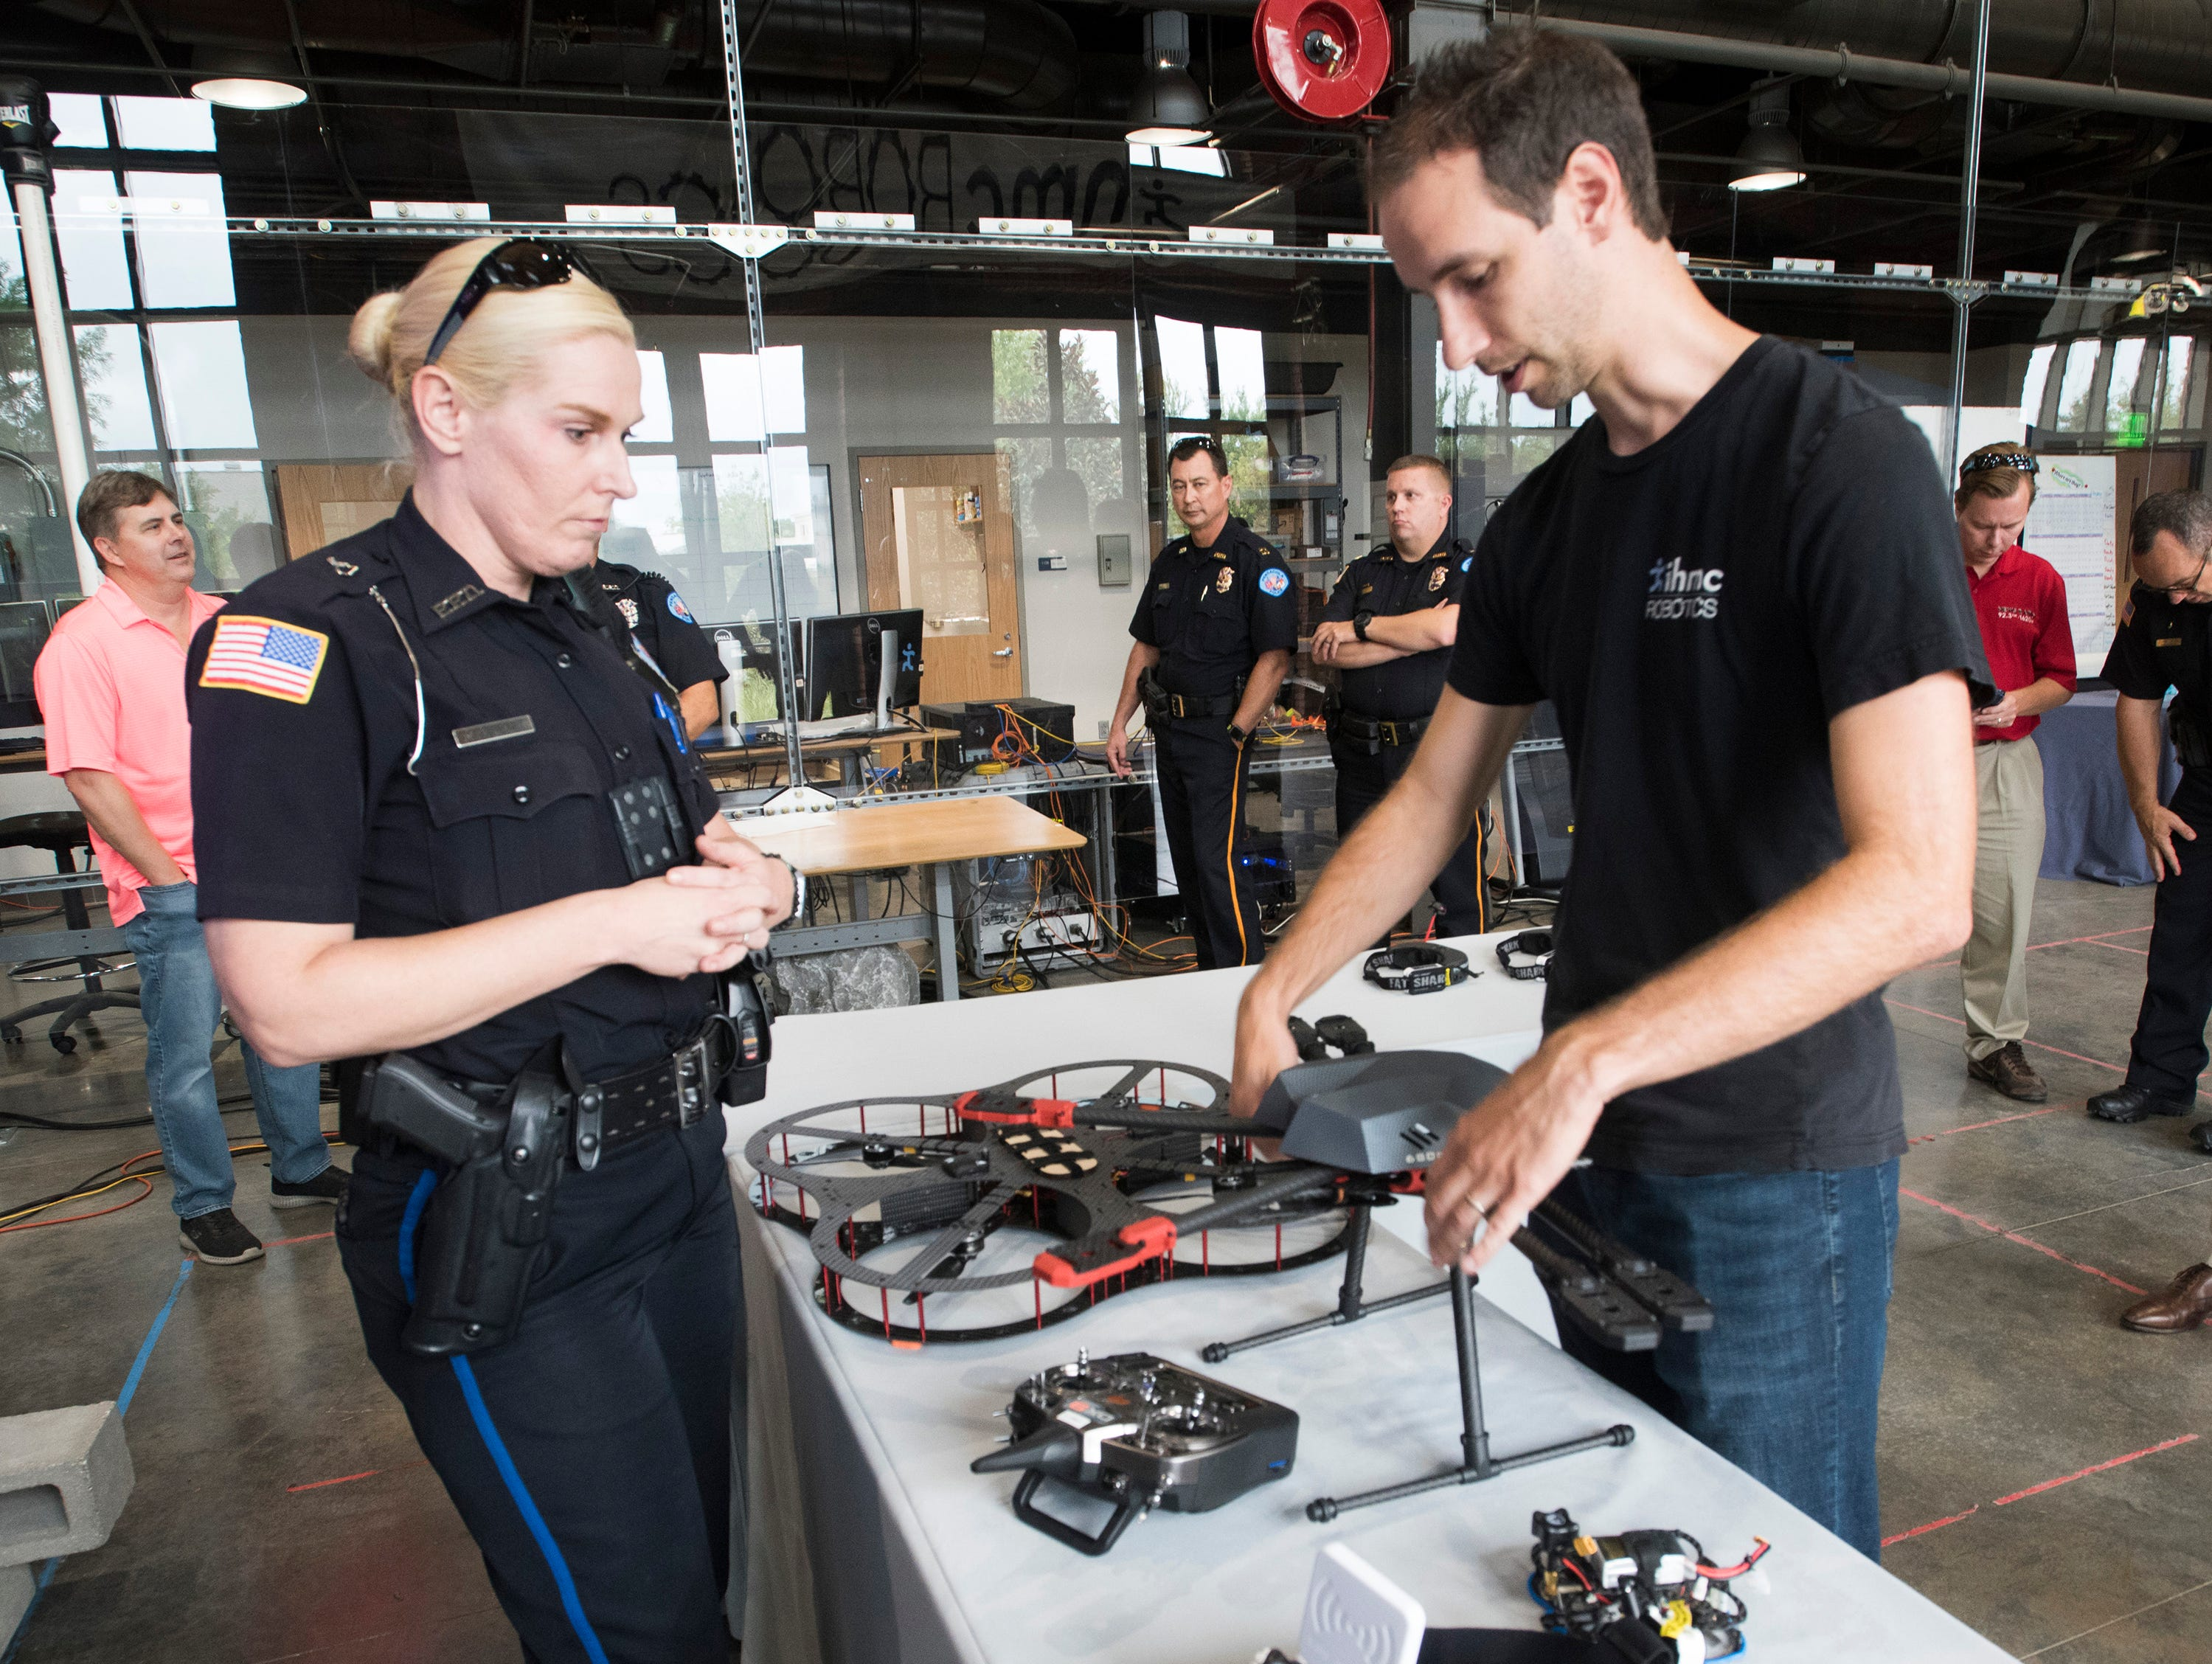 Institute of Human and Machine Cognition, Research Assoc. John Carff describes the drone technology available on the open market to Pensacola Police Officers, Kelly Eierhart, during a tour of the IHMC facilities on Thursday, Aug. 16, 2018. The PPD and IHMC are working together on a plan to implement the new technology into its law enforcement capabilities.